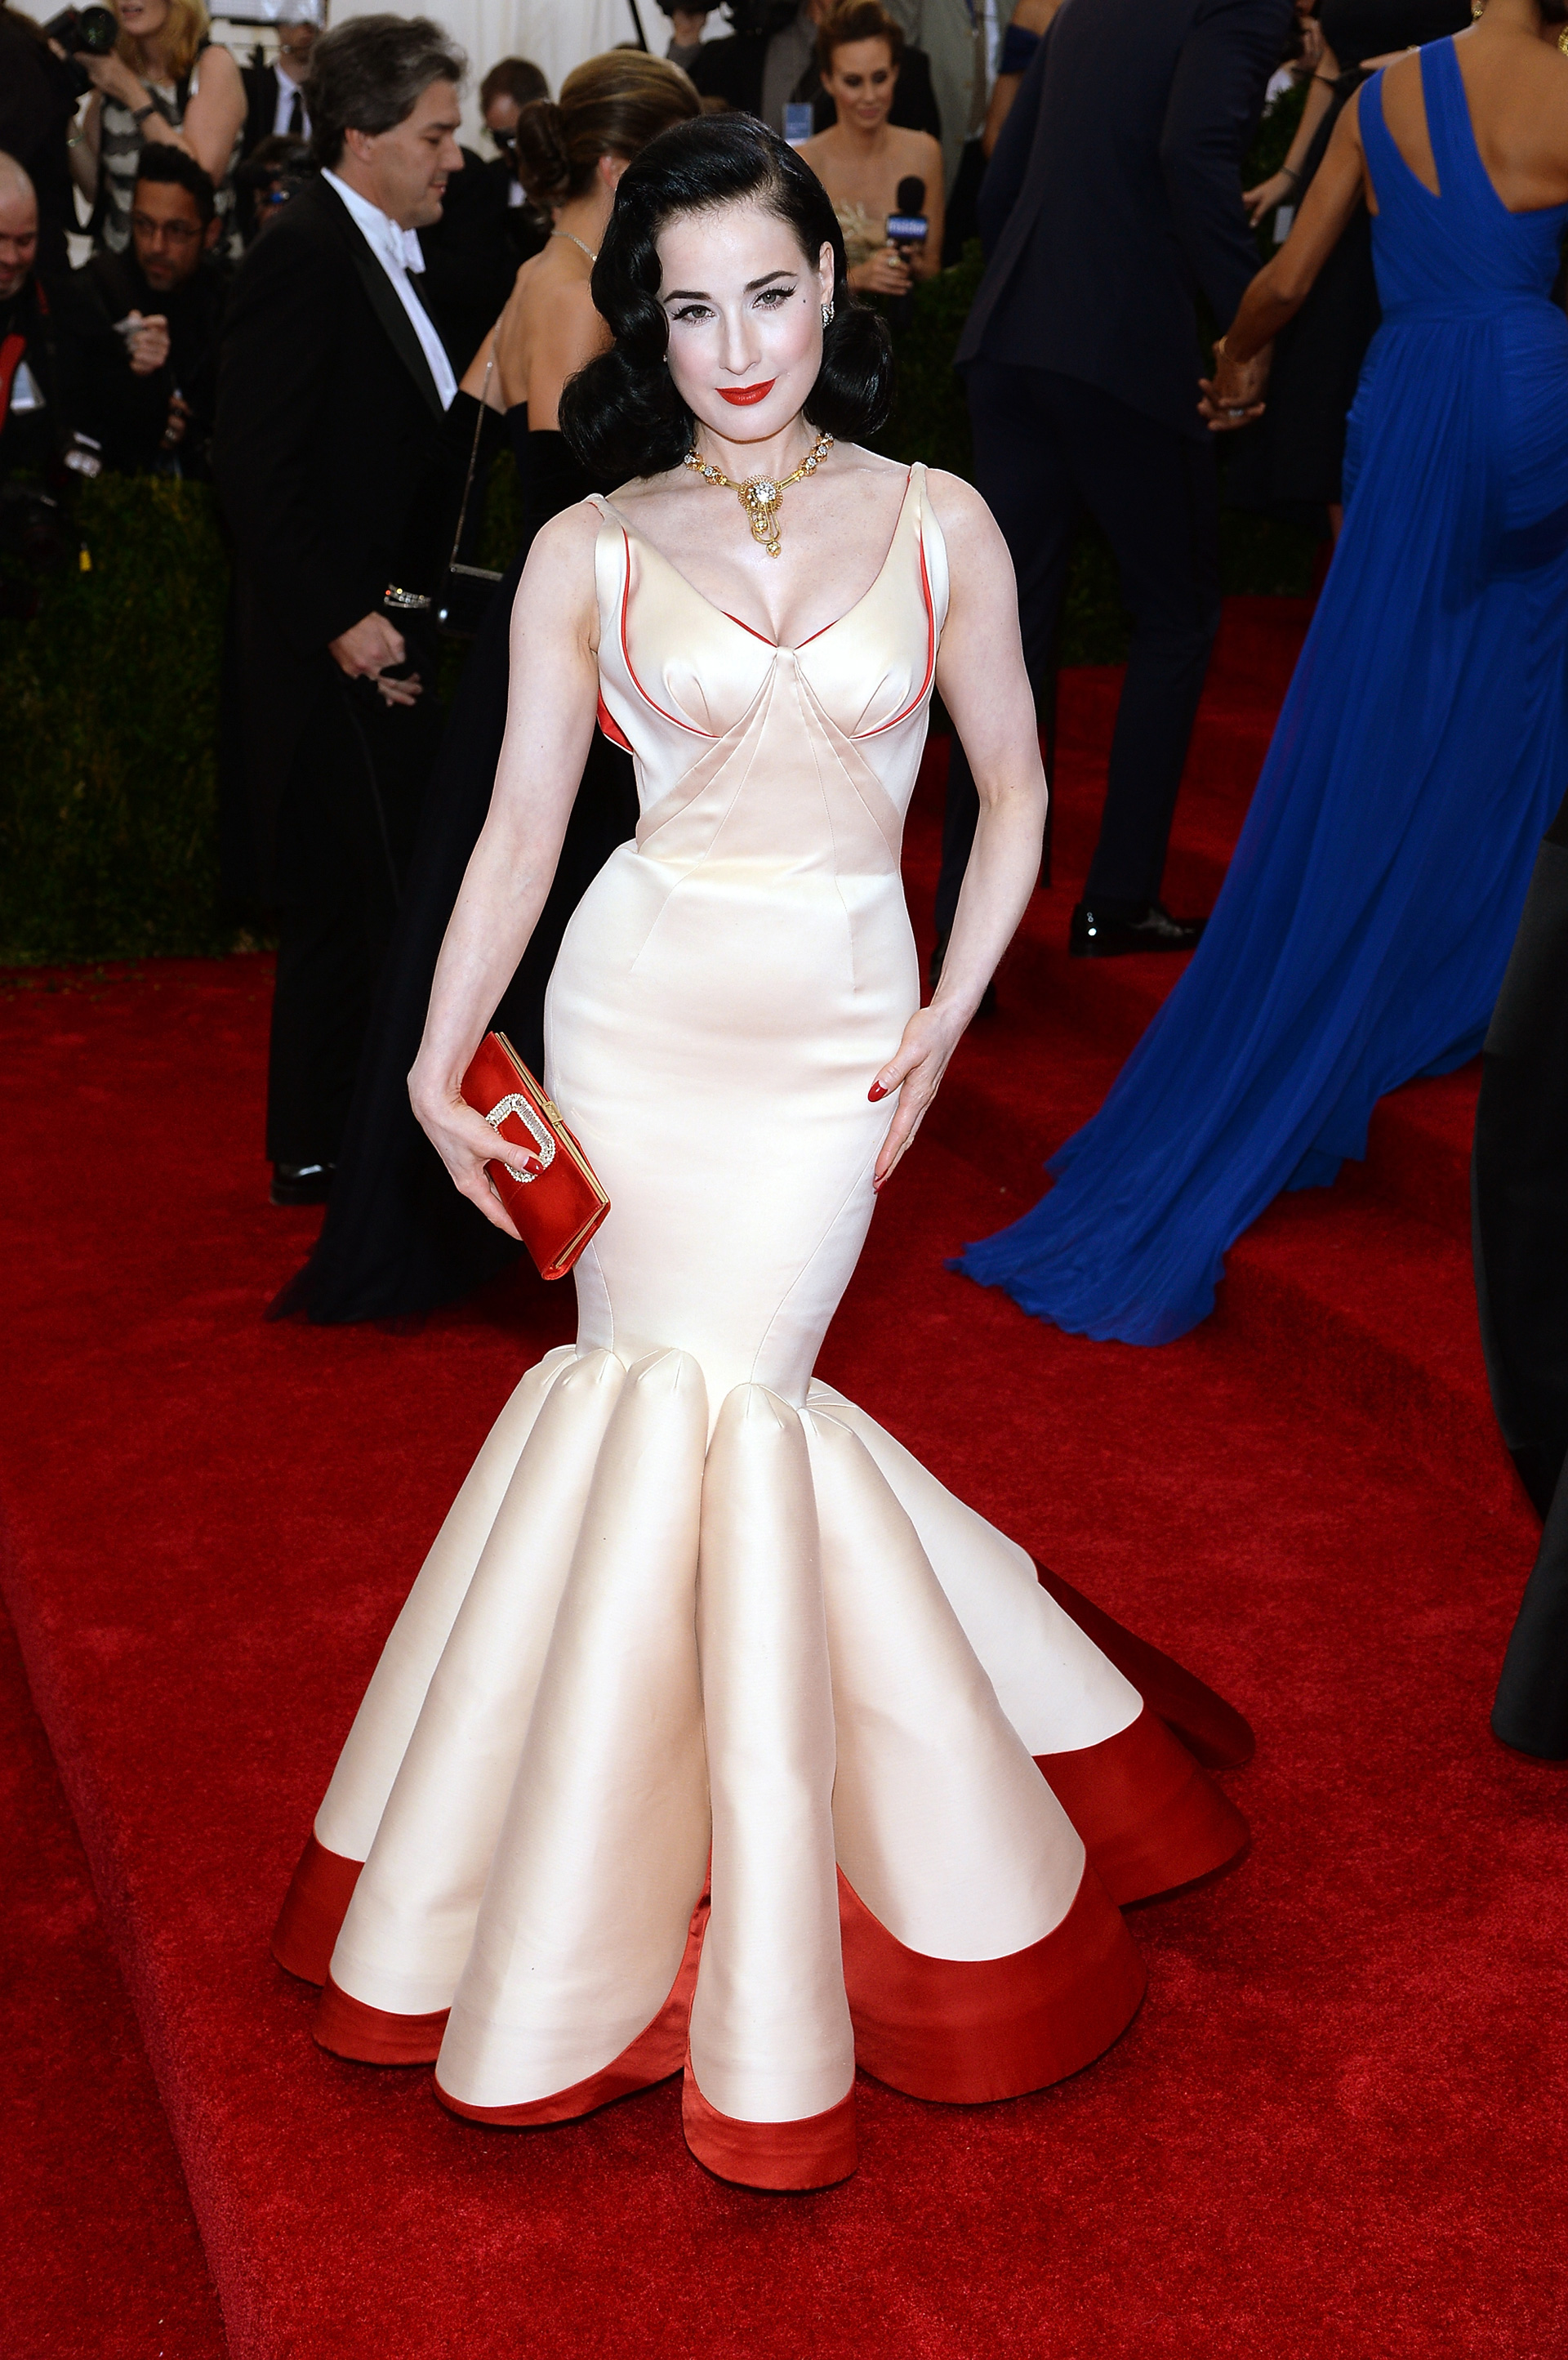 Dita Von Teese at the 2014 Met Gala